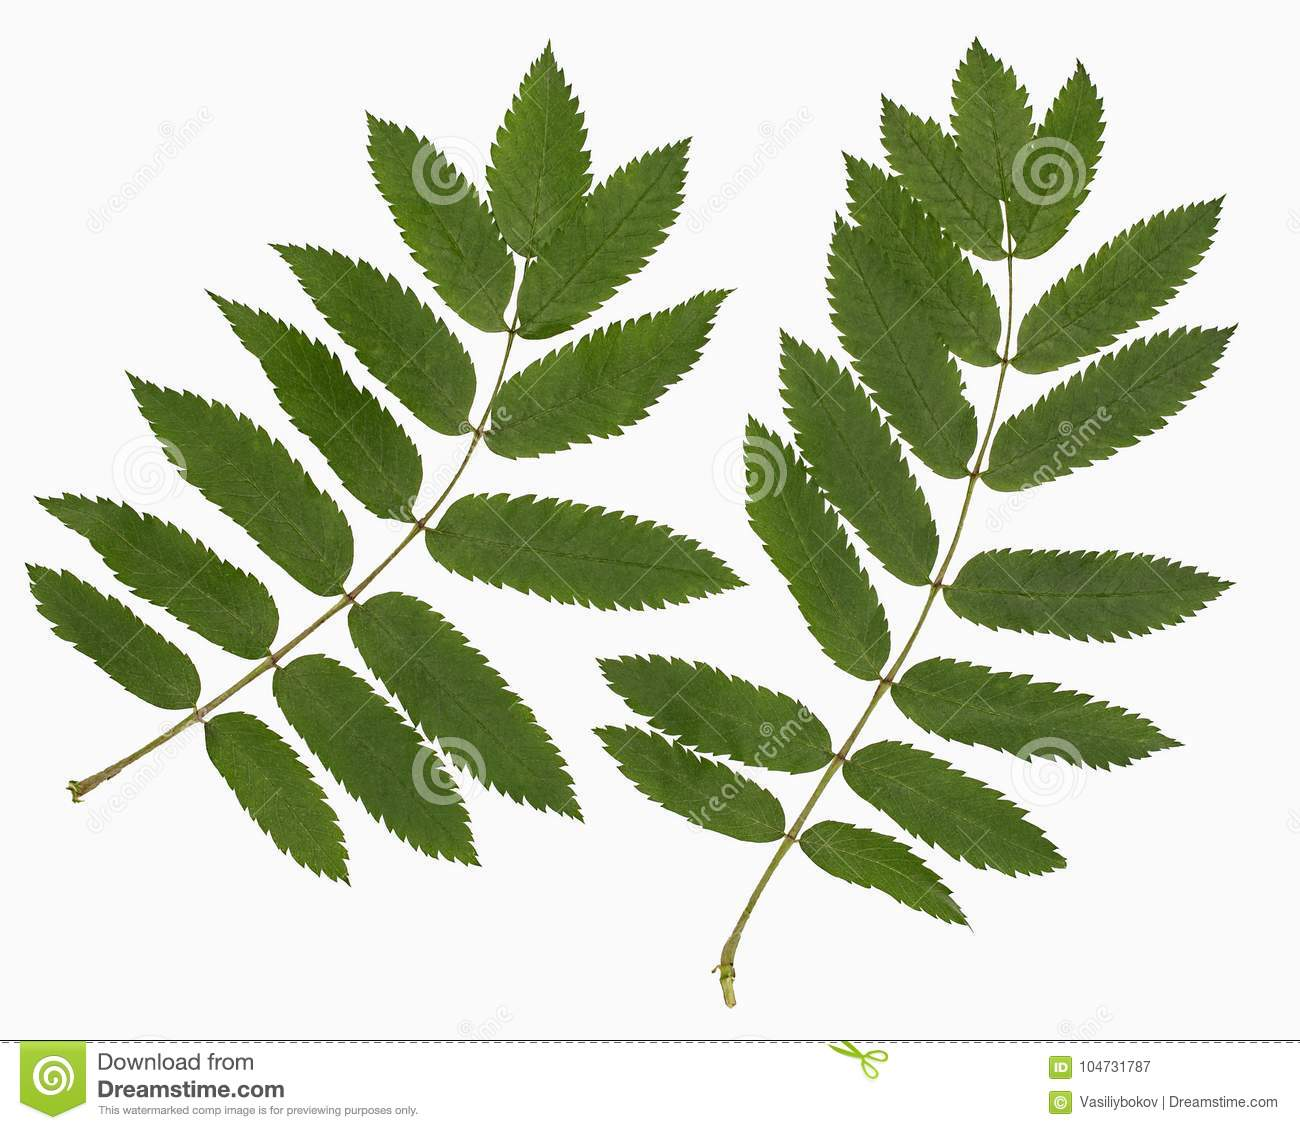 Leaf of a mountain ash